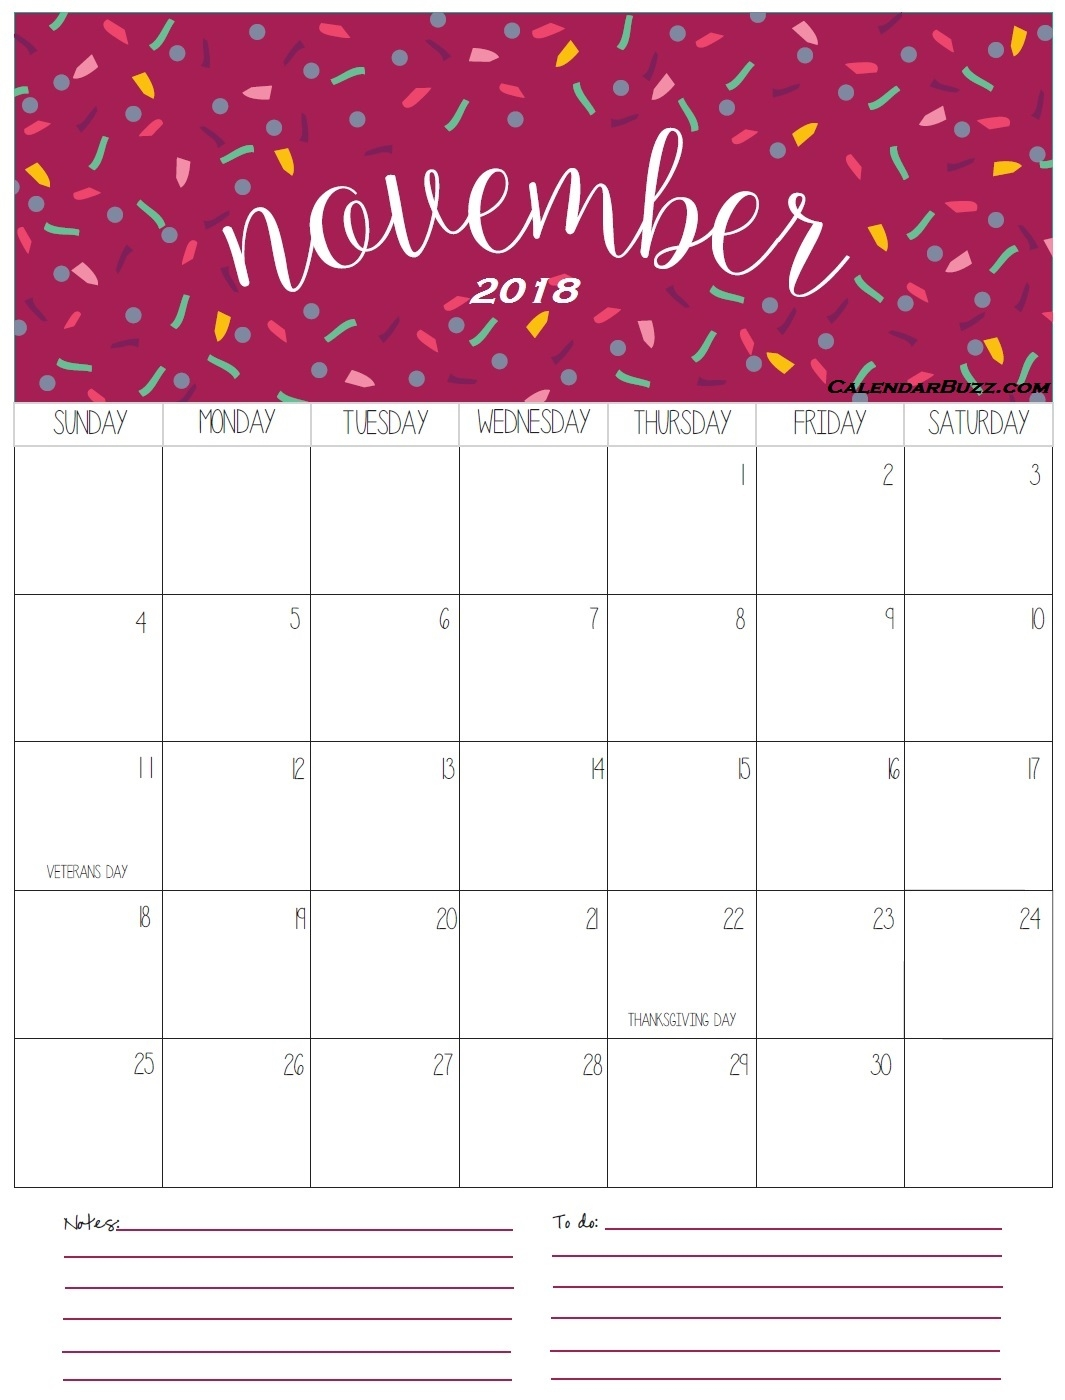 calendar november 2018 in pdf word excel printable template::November 2018 Calendar Pdf